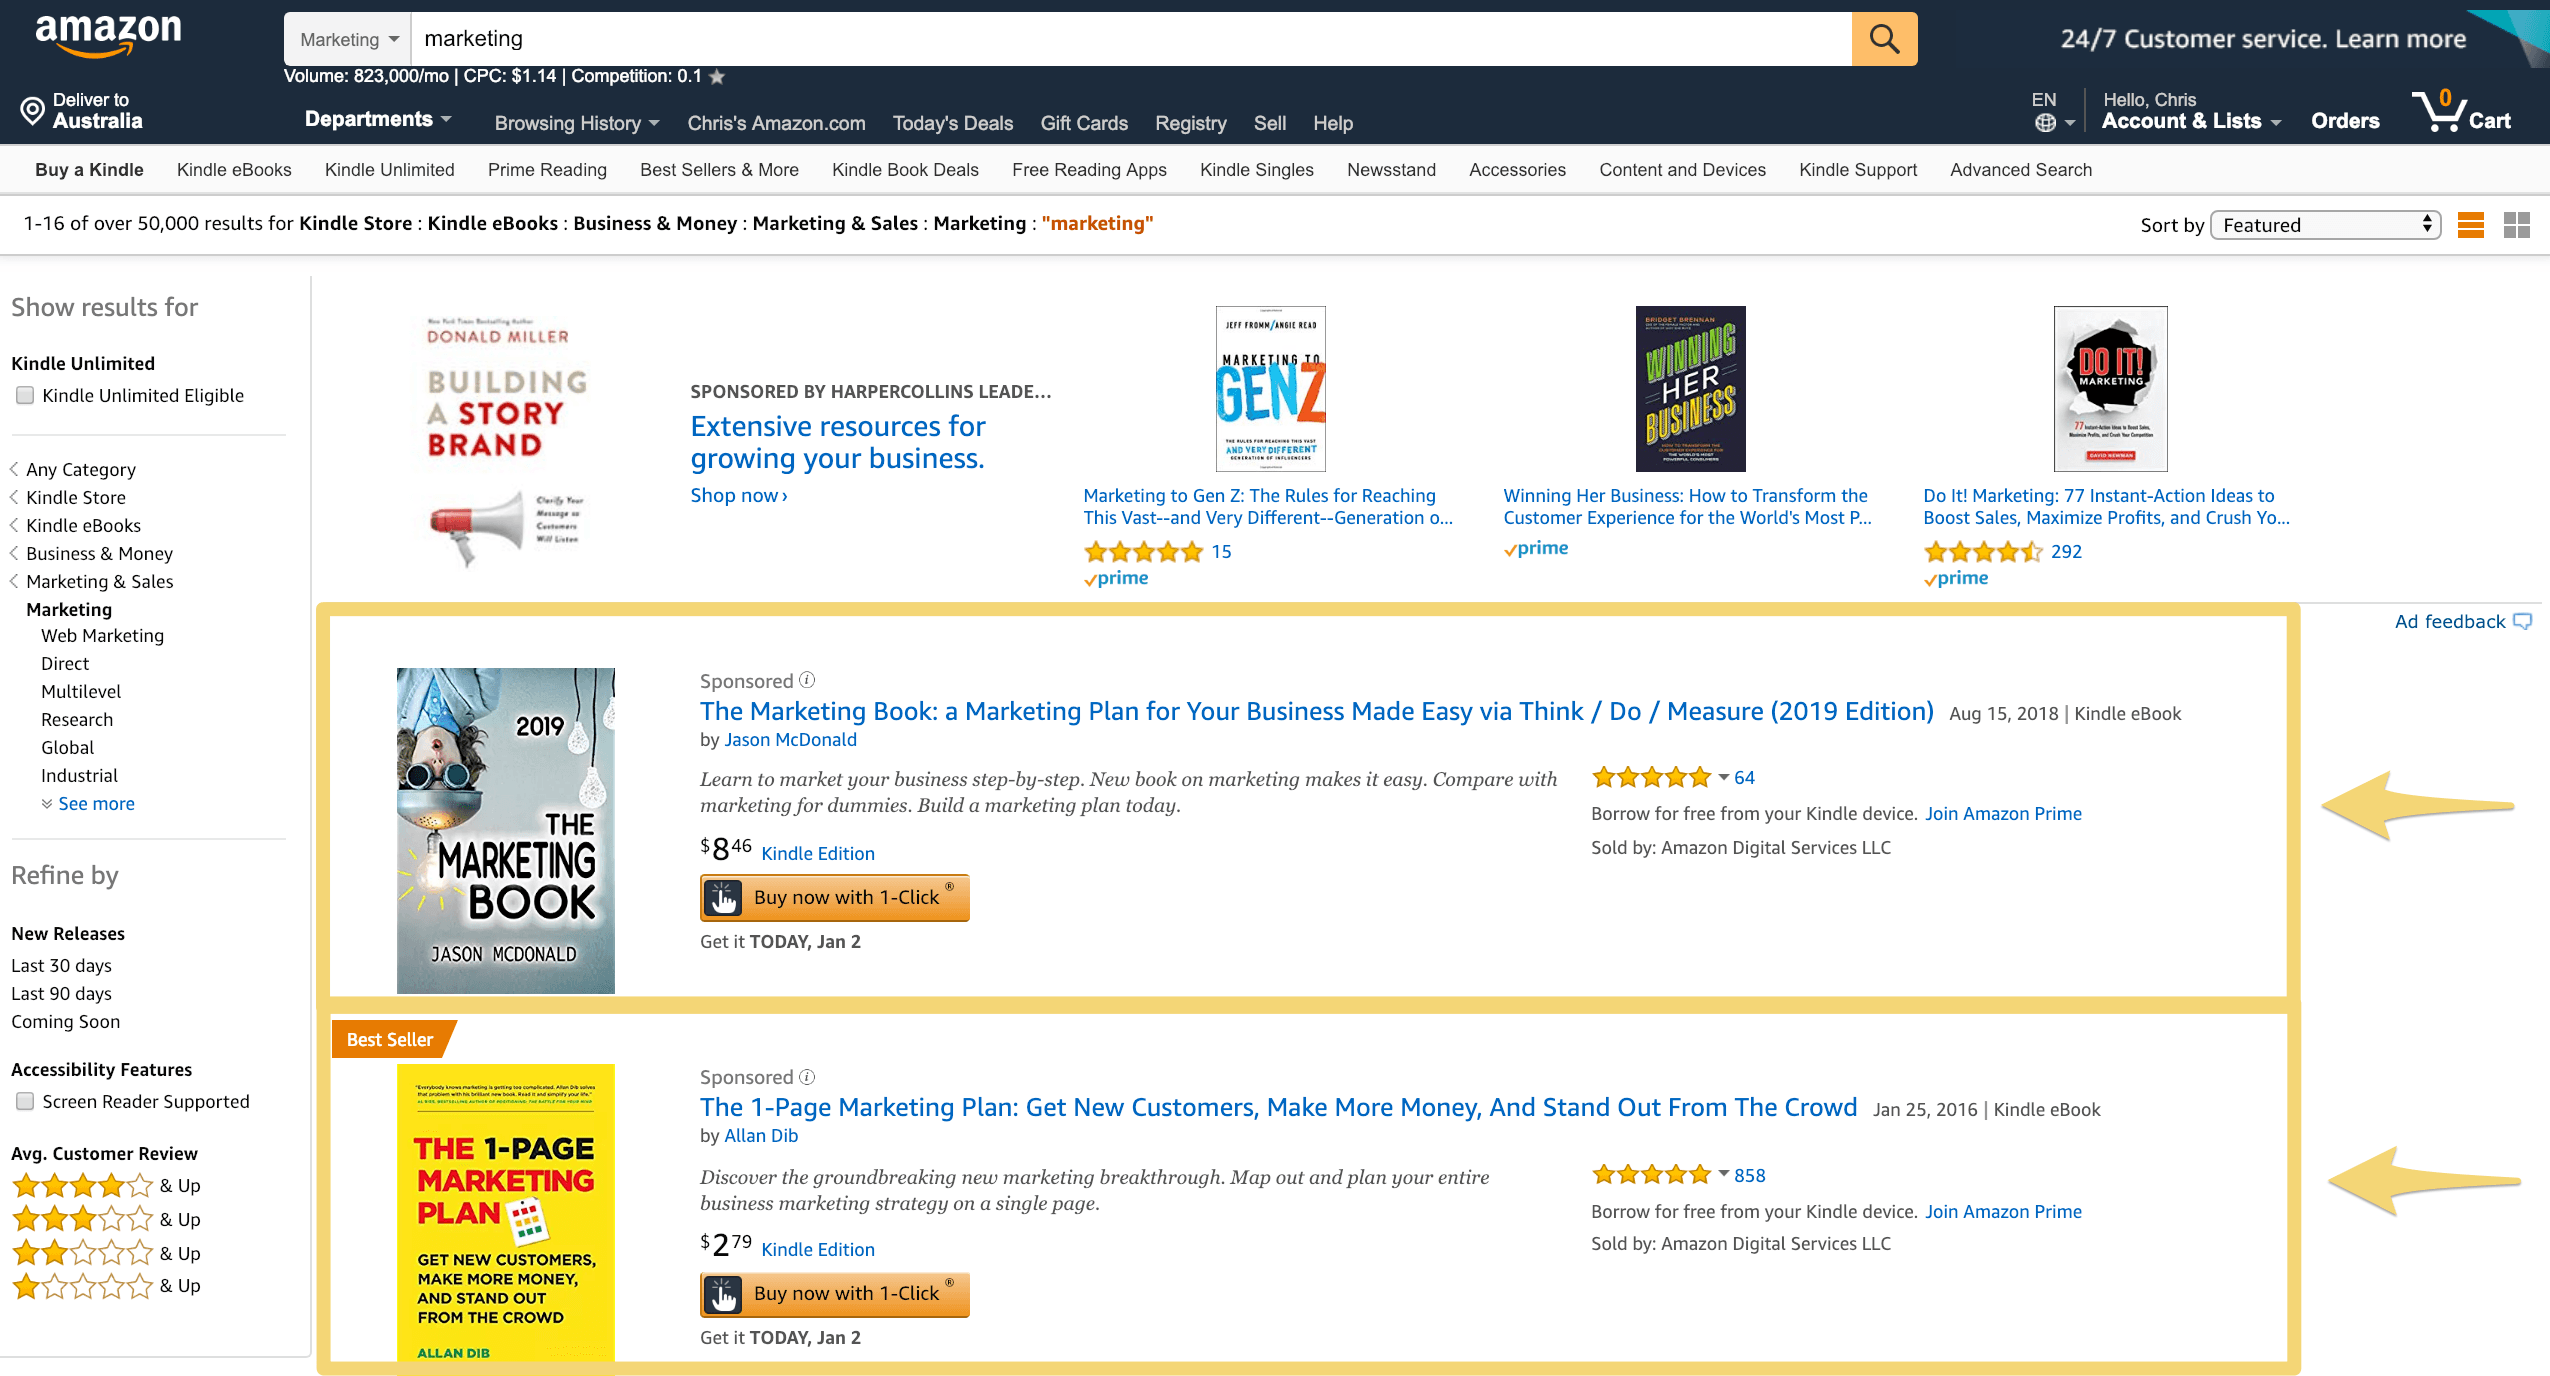 amazon sponsored products ads image